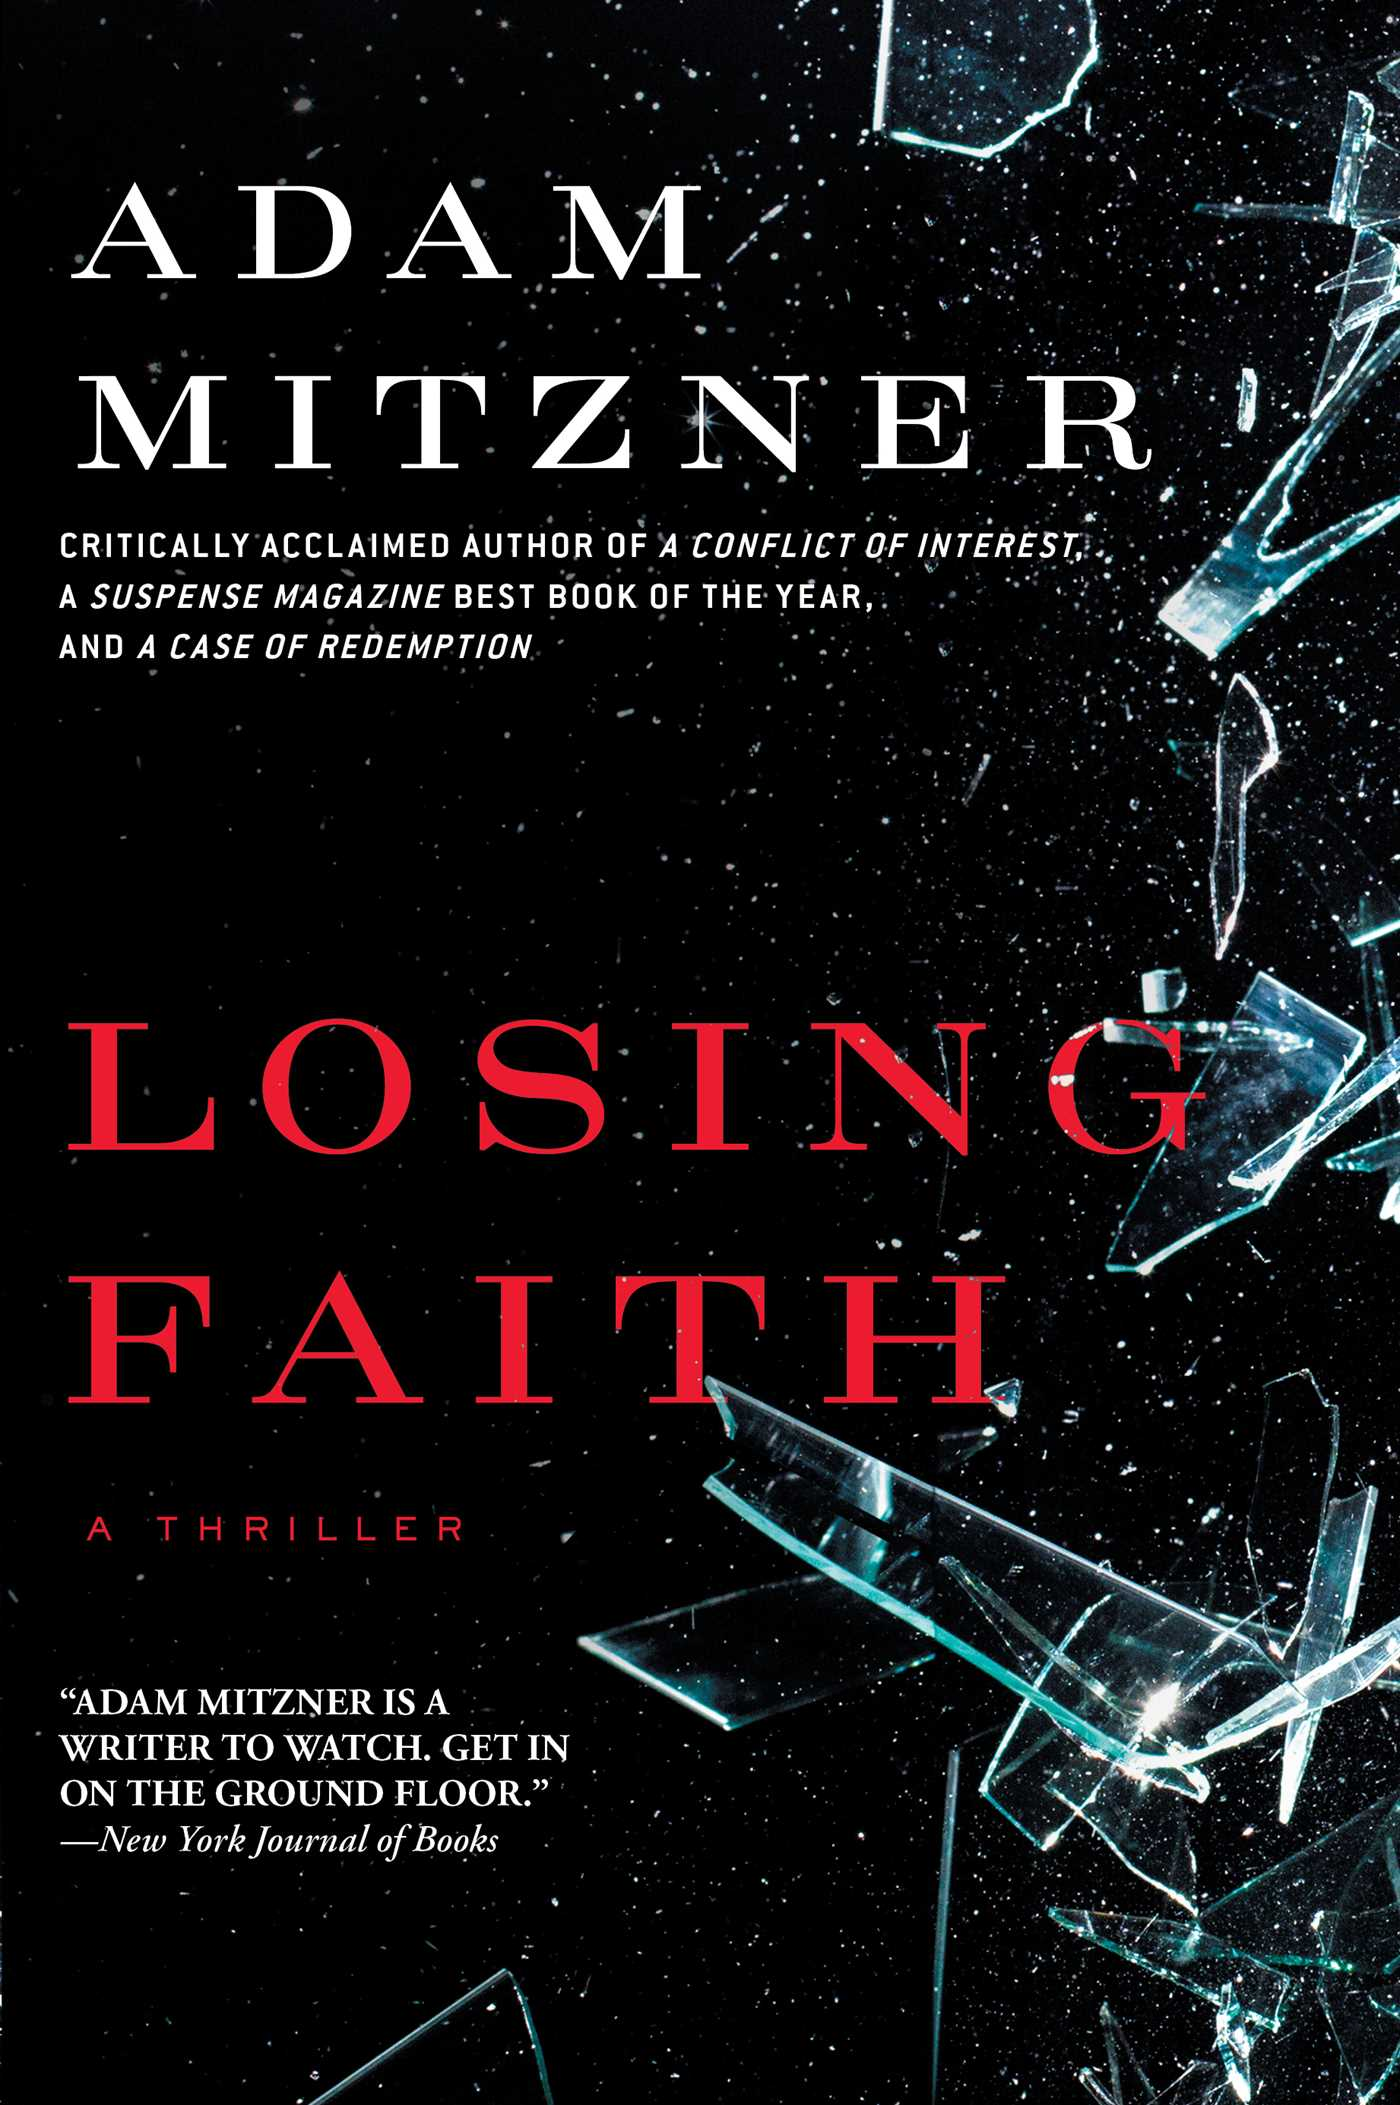 Losing-faith-9781476764245_hr